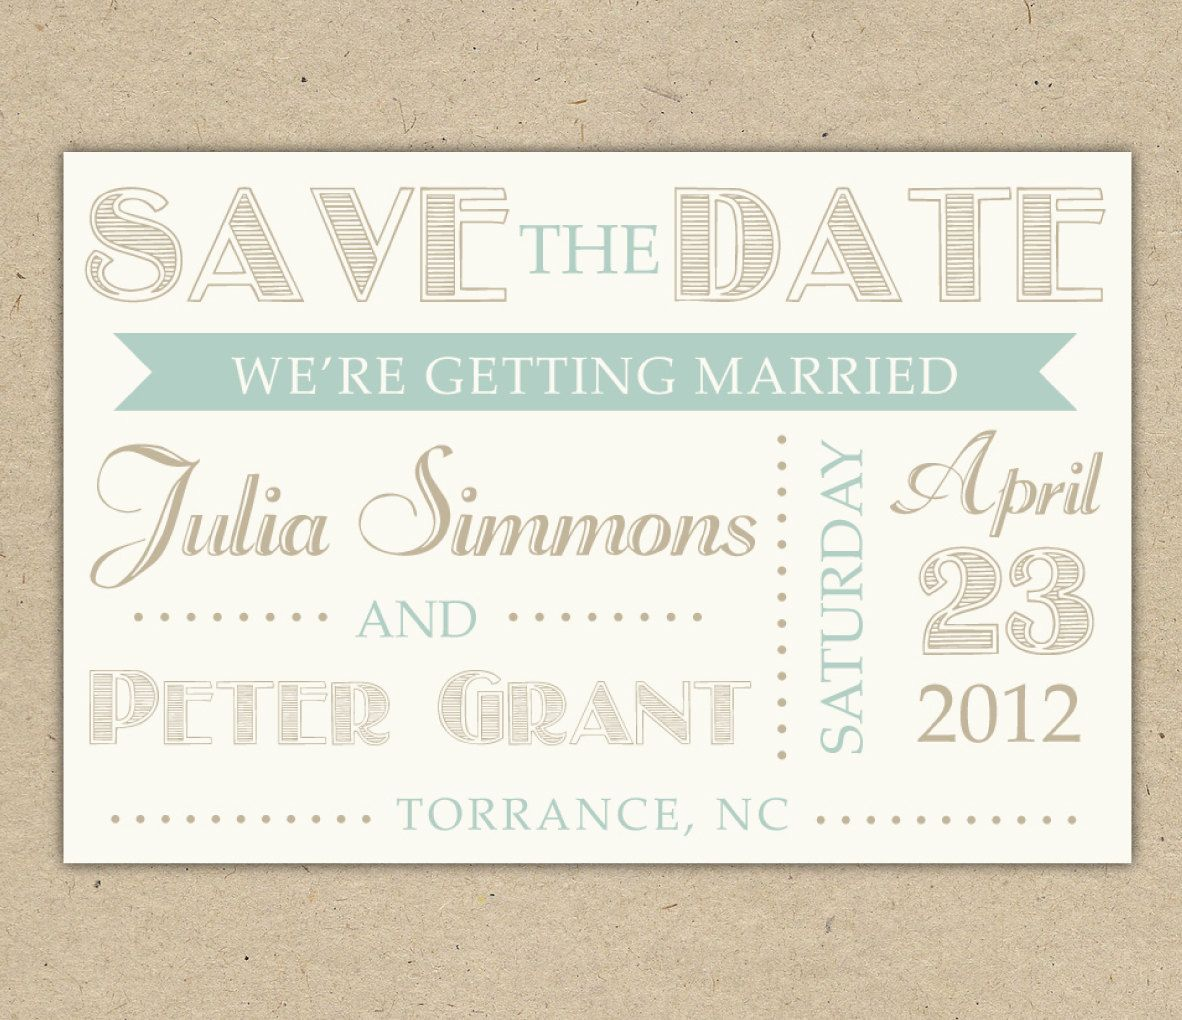 Save The Date Cards Templates For Weddings – Save the Date Template